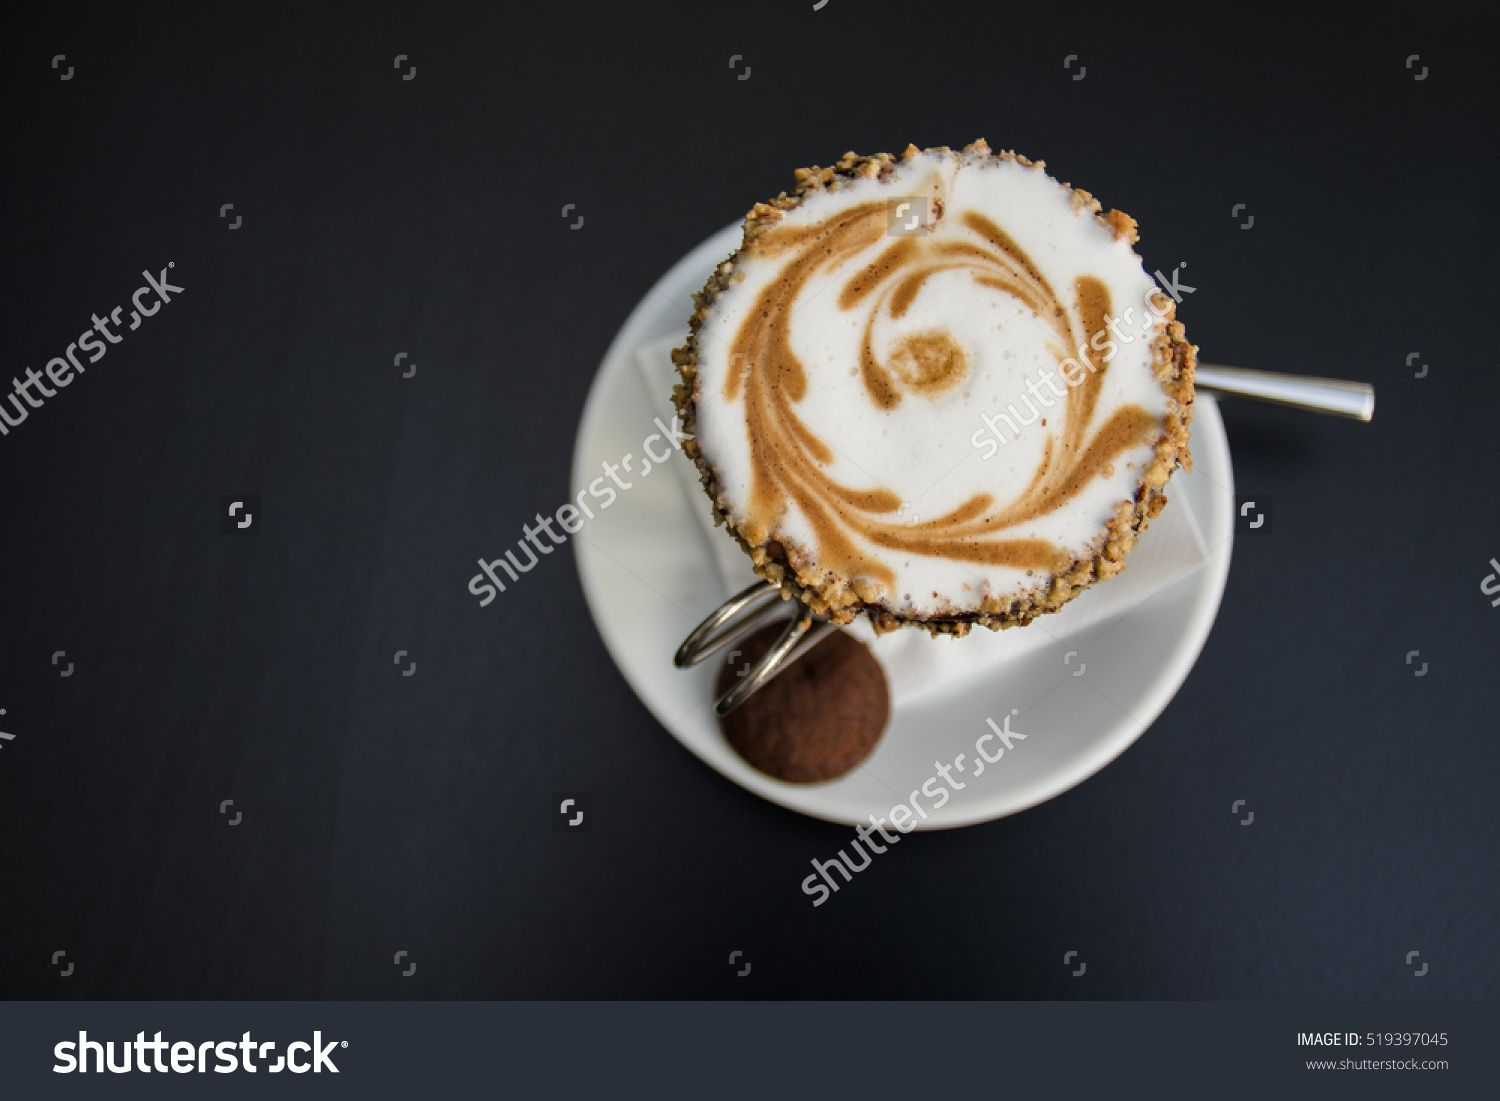 Close Up Topped Of Chocolate Milkshake, Chocolate Sauce On Top View. Glass Of Thick Creamy Coffee Milkshake, Frappe Or Iced Coffee With A Topping Of Ice Cream And Drizzled Syrup Стоковые фотографии 519397045 : Shutterstock